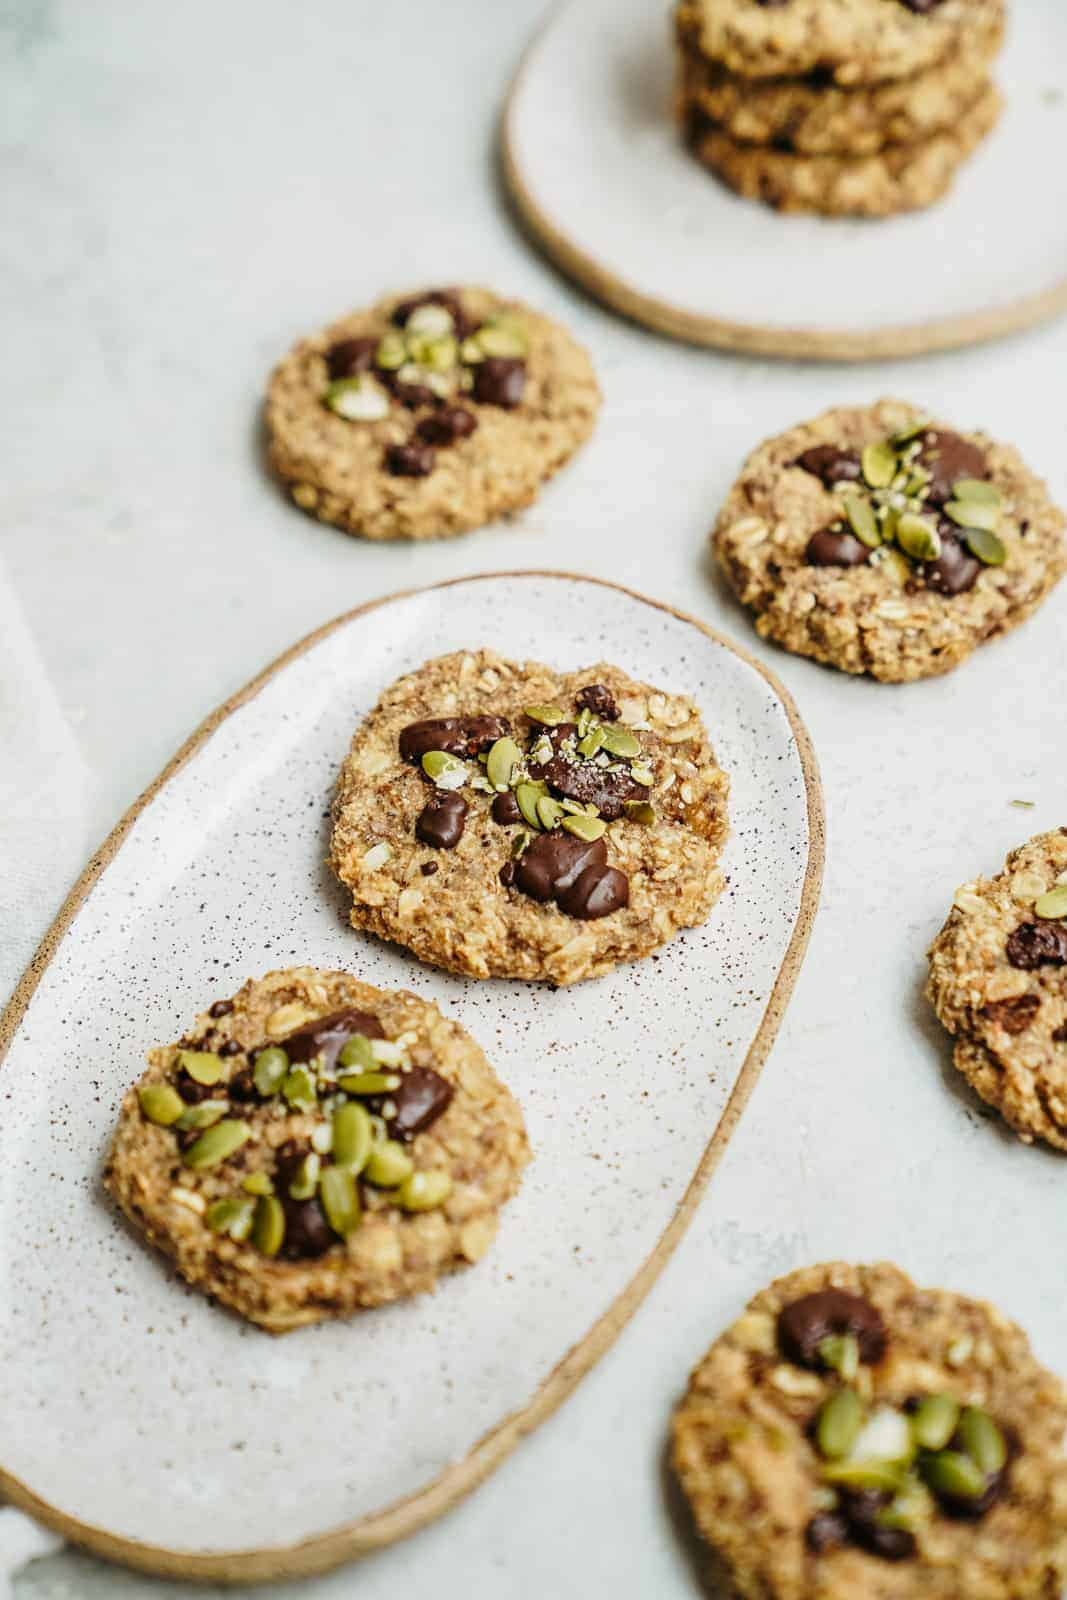 Breakfast cookies on a plate and on countertop